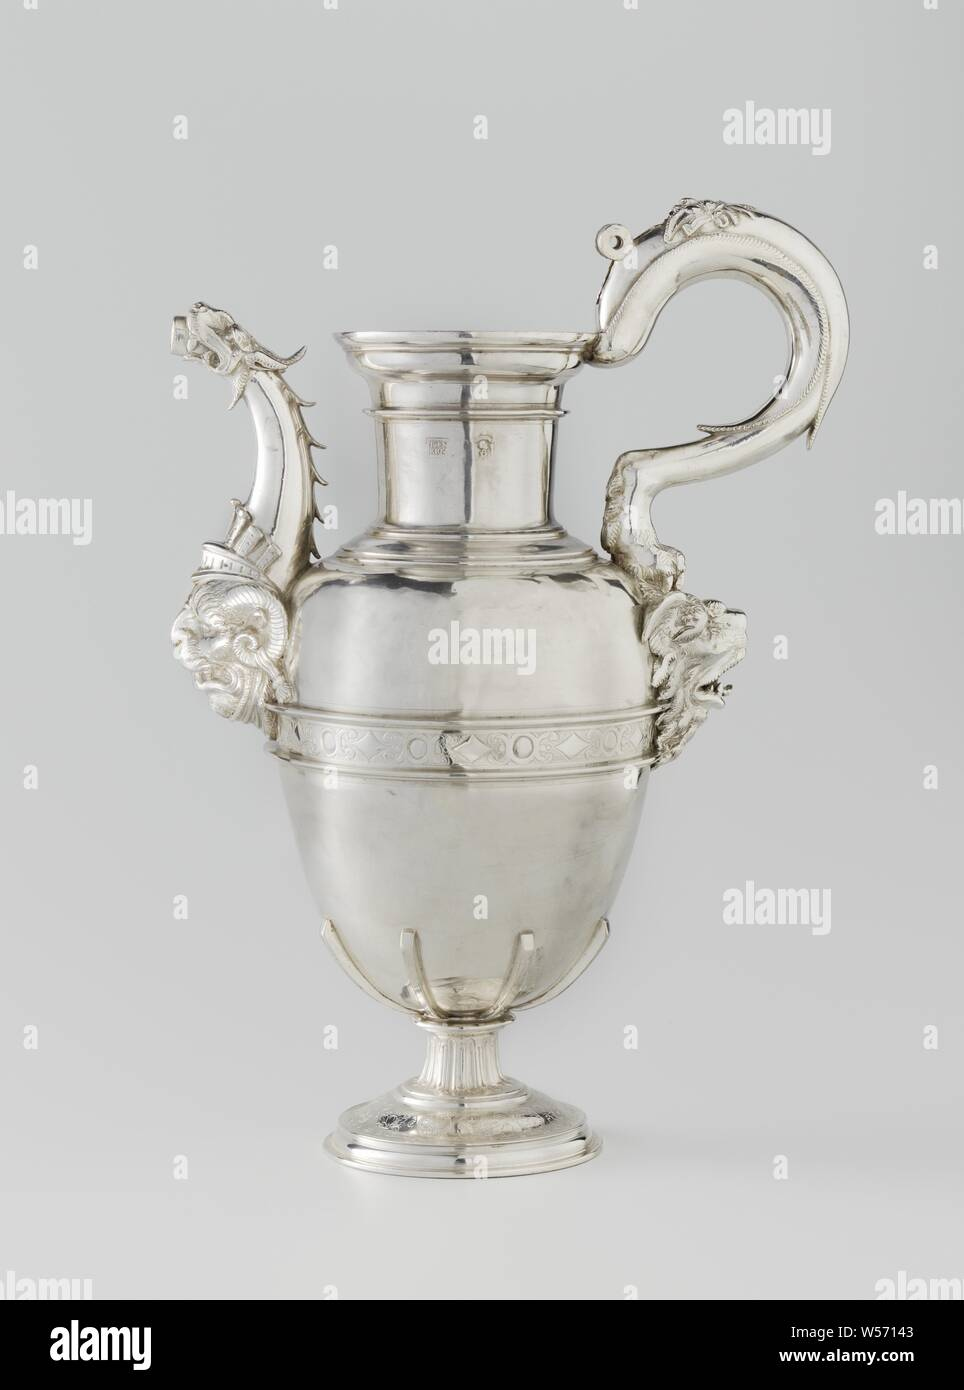 Piet Heyn ewer, silver jug. The egg-shaped, smooth barrel, with engraved band in the middle, is grasped at the bottom by six cleats and rests on a round base. The spout has the shape of a dragon. Marked: F ENRIQZ, dragon, lion's head, ornament, ram's head, Pieter Pietersz. Heyn, Francisco Enriquez, Spain, c. 1550 - c. 1600, silver (metal), h 35 cm d 10 cm d 15 cm w 24.5 cm Stock Photo